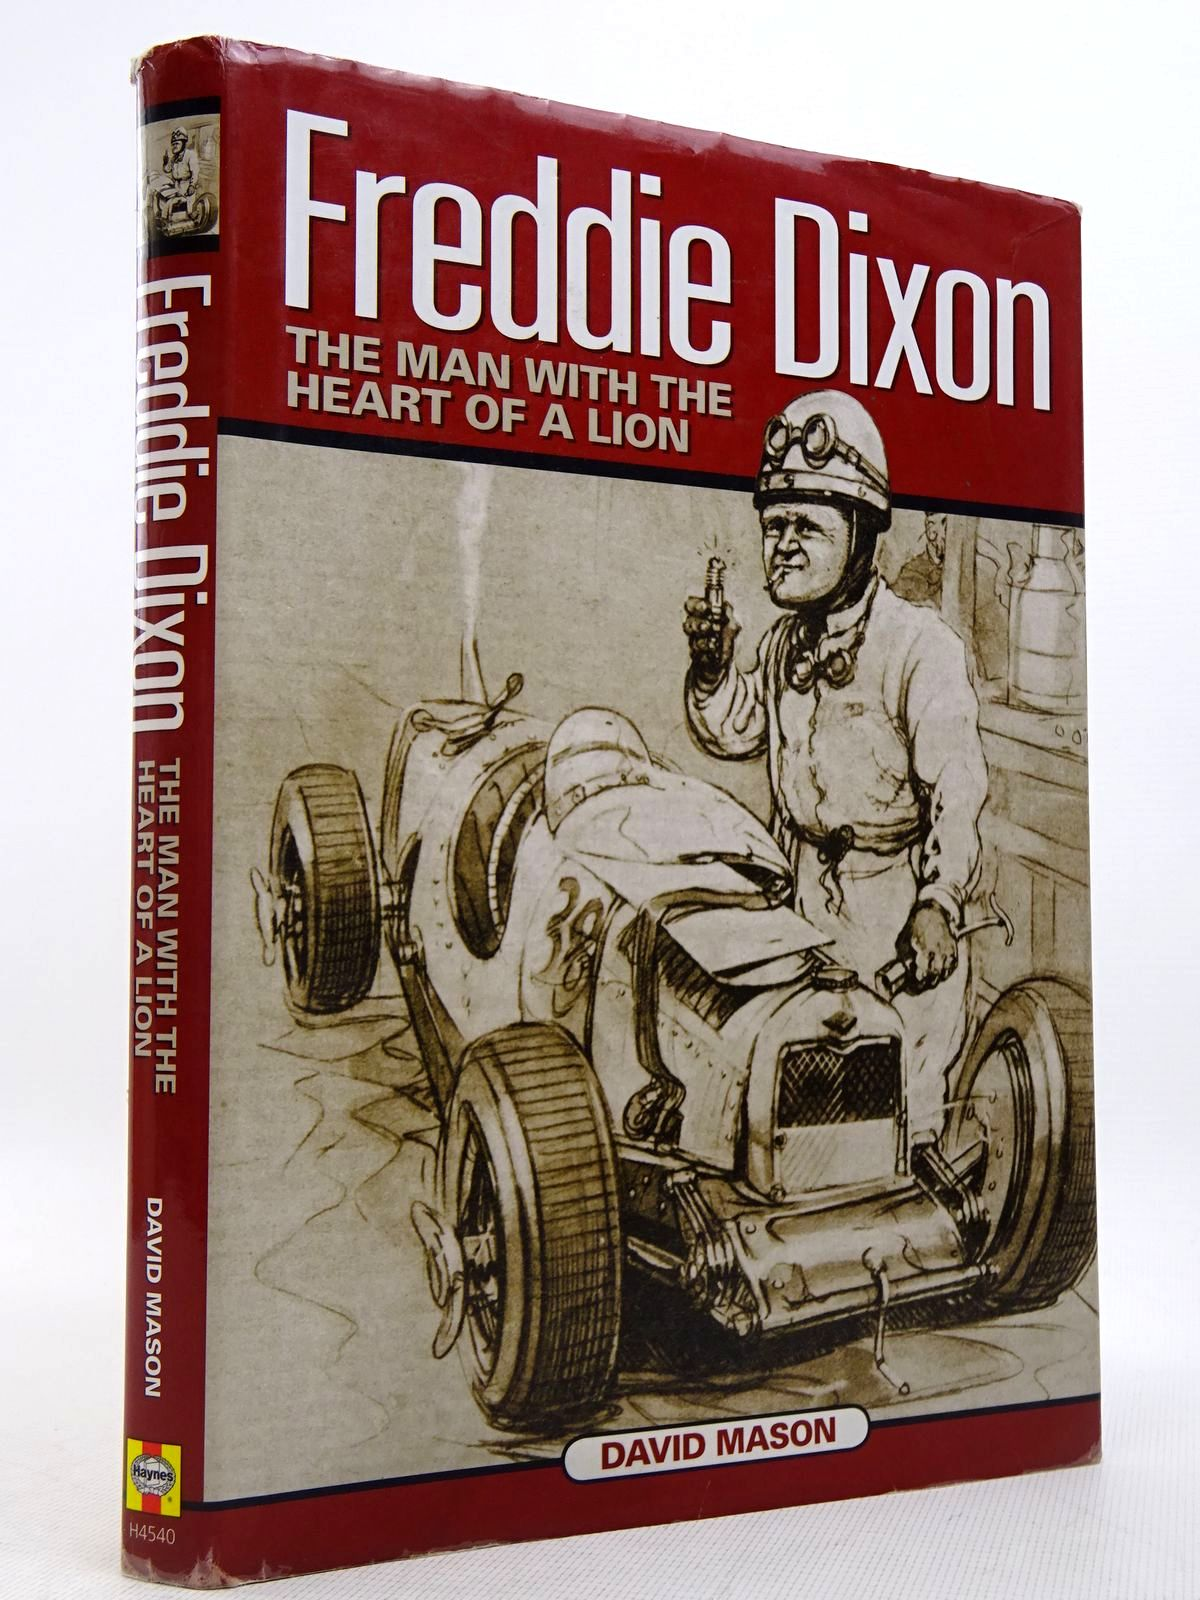 Photo of FREDDIE DIXON THE MAN WITH THE HEART OF A LION written by Mason, David published by Haynes Publishing (STOCK CODE: 1817147)  for sale by Stella & Rose's Books